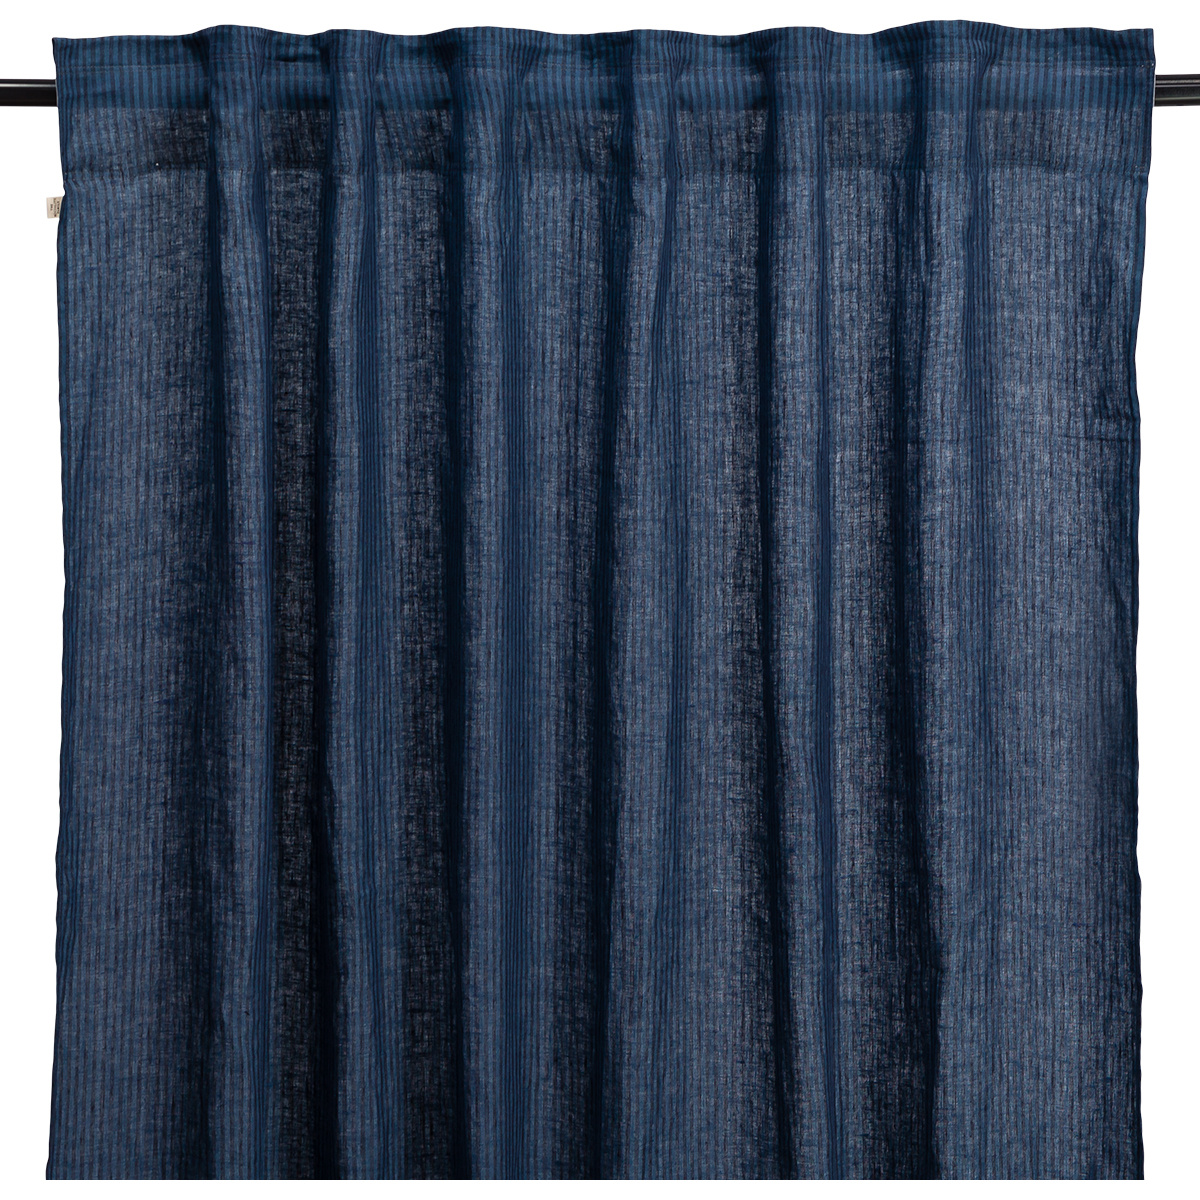 Mare Black and Blue Striped Curtain